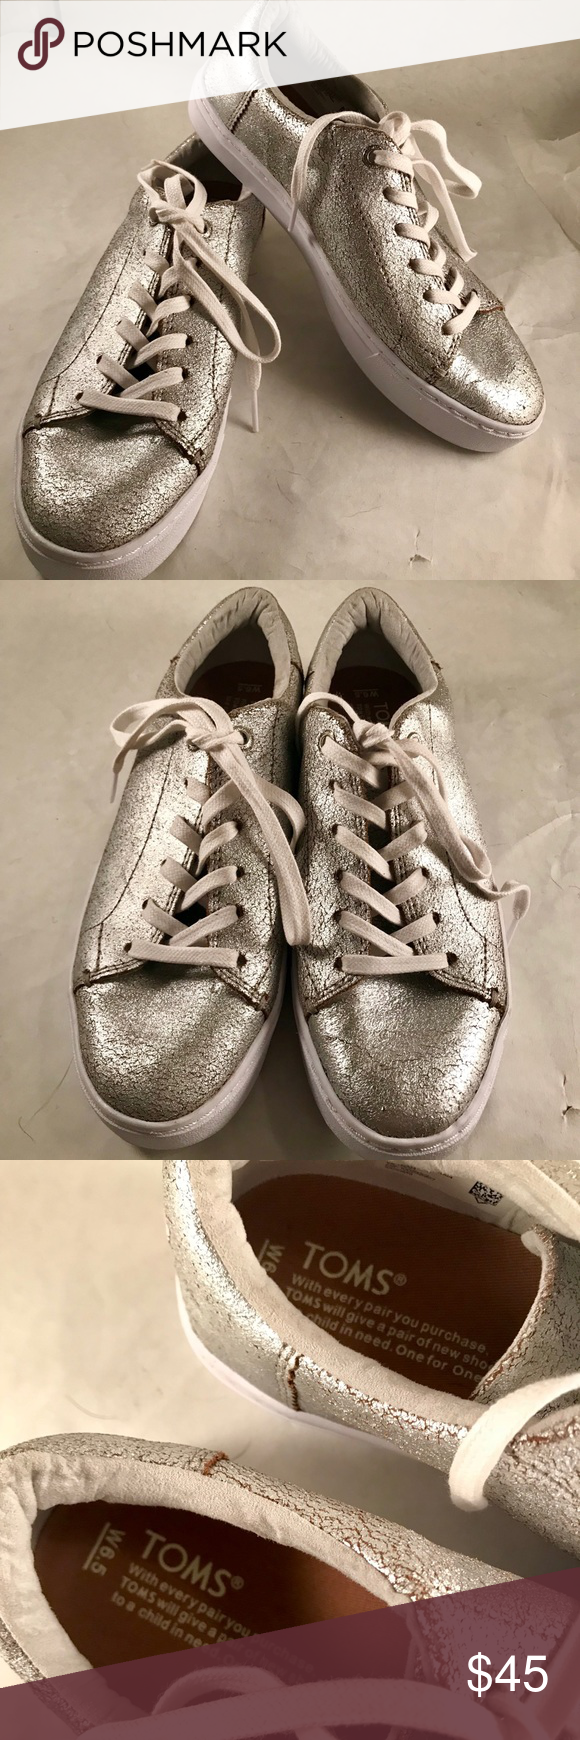 b7d6992a609 Toms Silver Distressed Sneakers SILVER METALLIC LEATHER WOMEN S LENOX  SNEAKERS gorgeous pair of comfy yet stylish pair of sneakers. They are NWOT  no box.